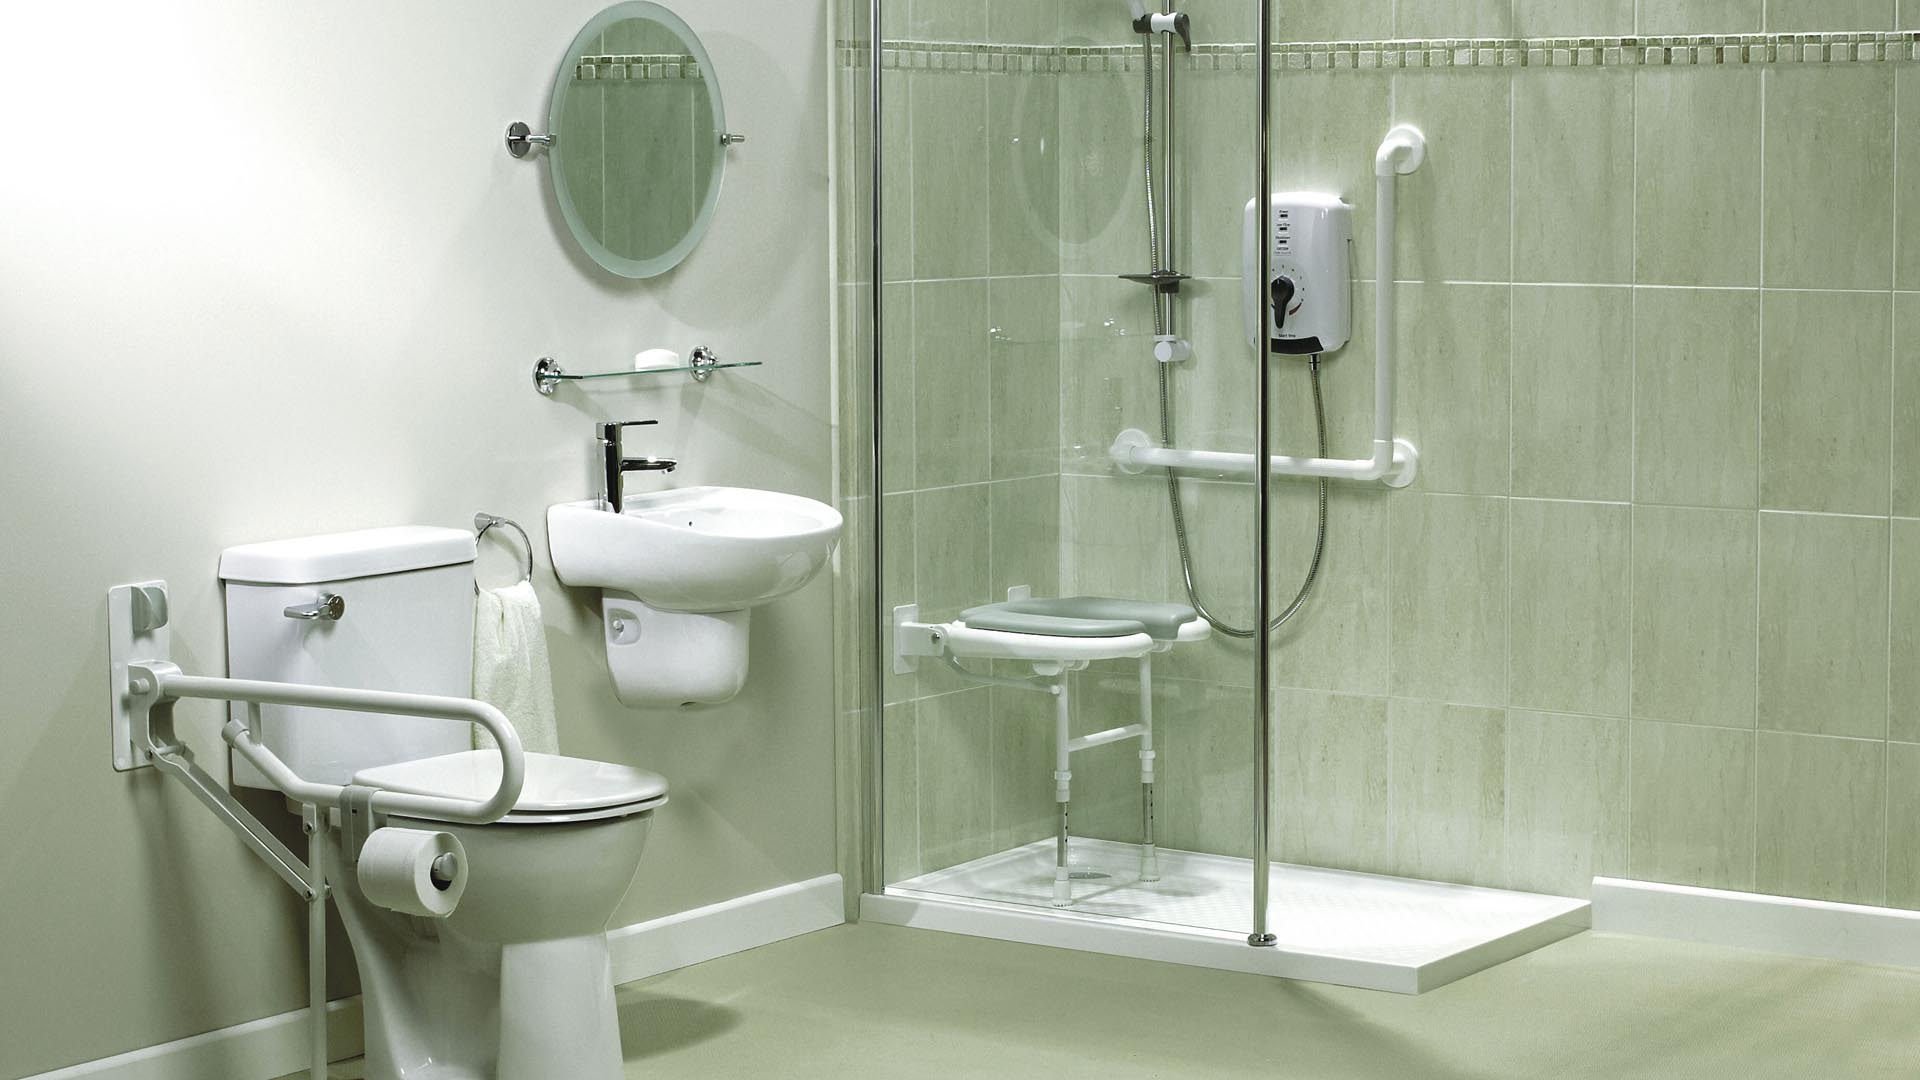 Disabled Bathroom Products Woodhouse Amp Sturnham Ltd